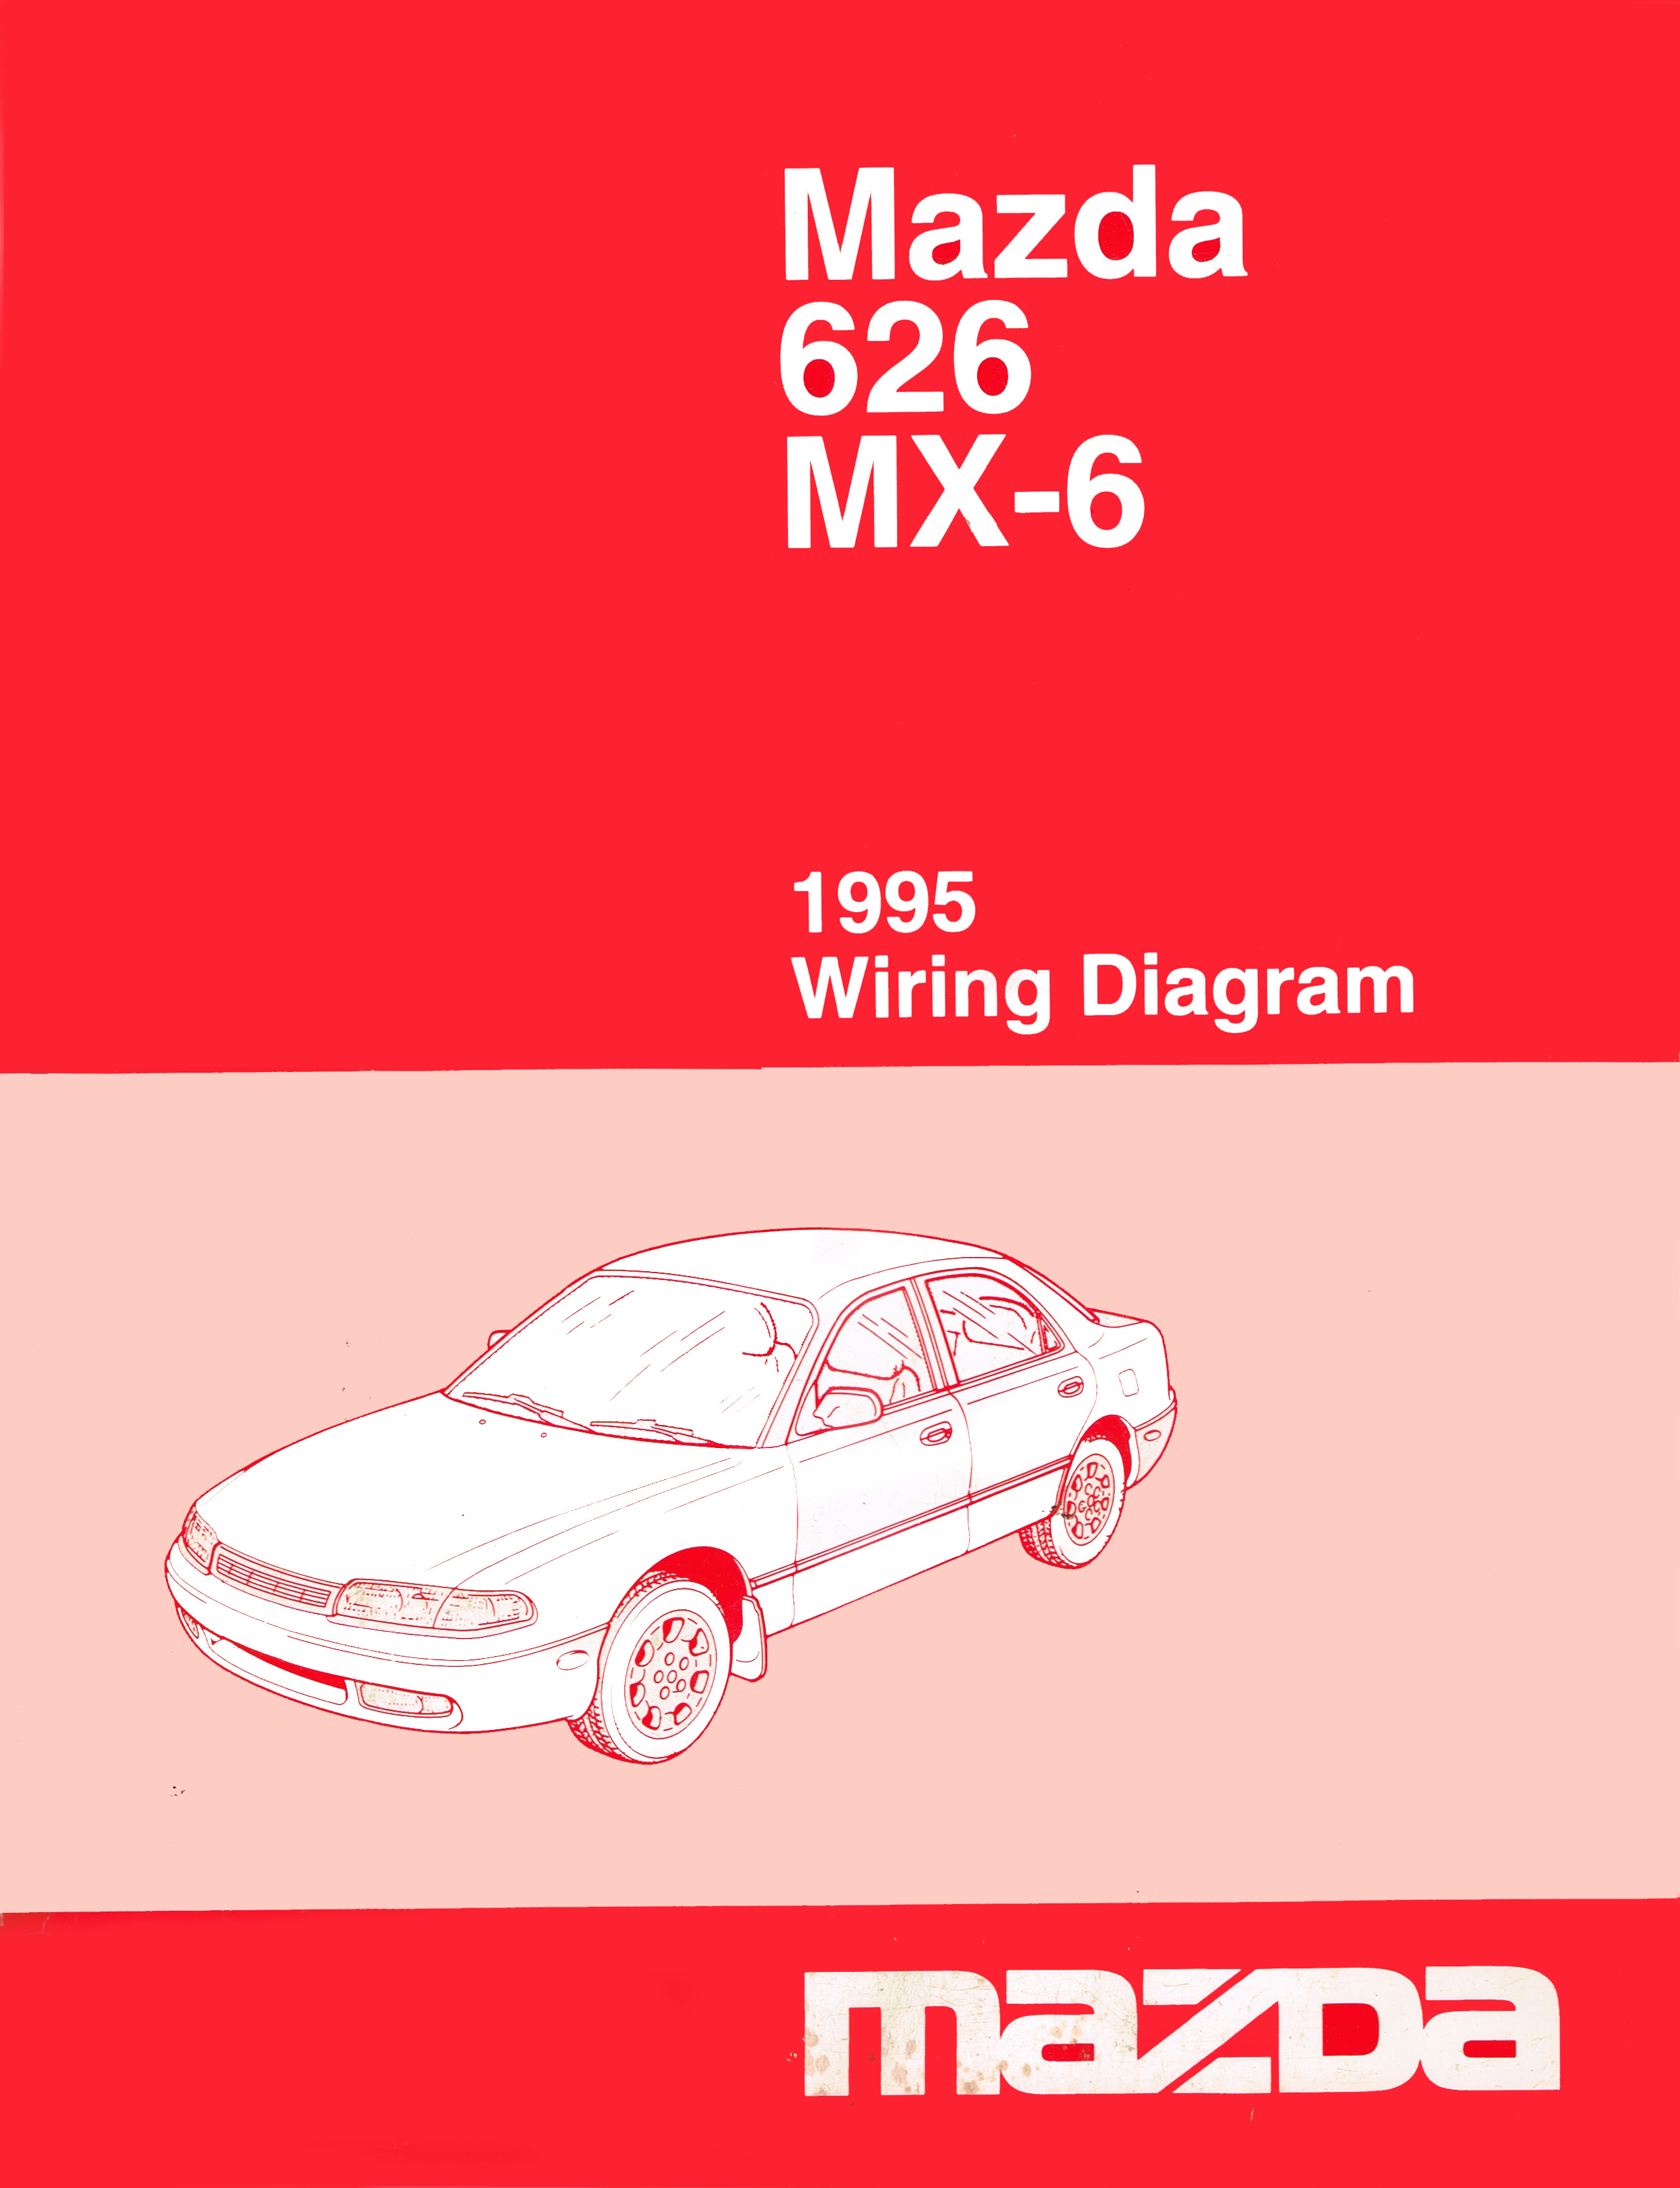 Pmx626 Info Us Mazda 626 Mx 6 Work Shop Manuals Scans 1995 Wiring Diagram